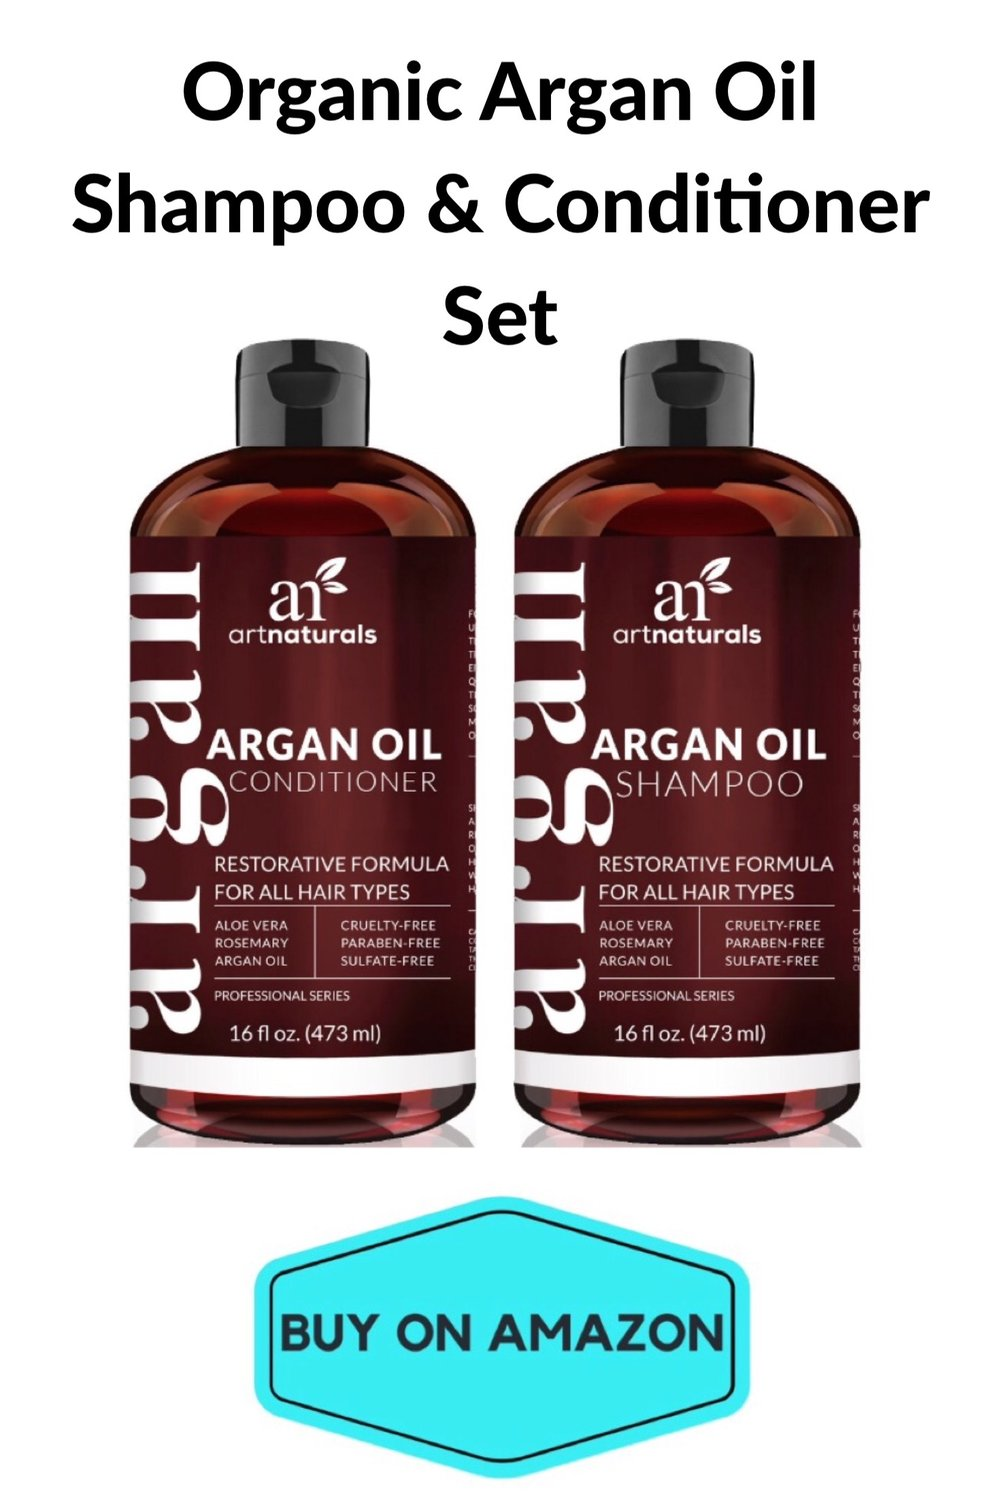 Organic Argan Oil Shampoo & Conditioner